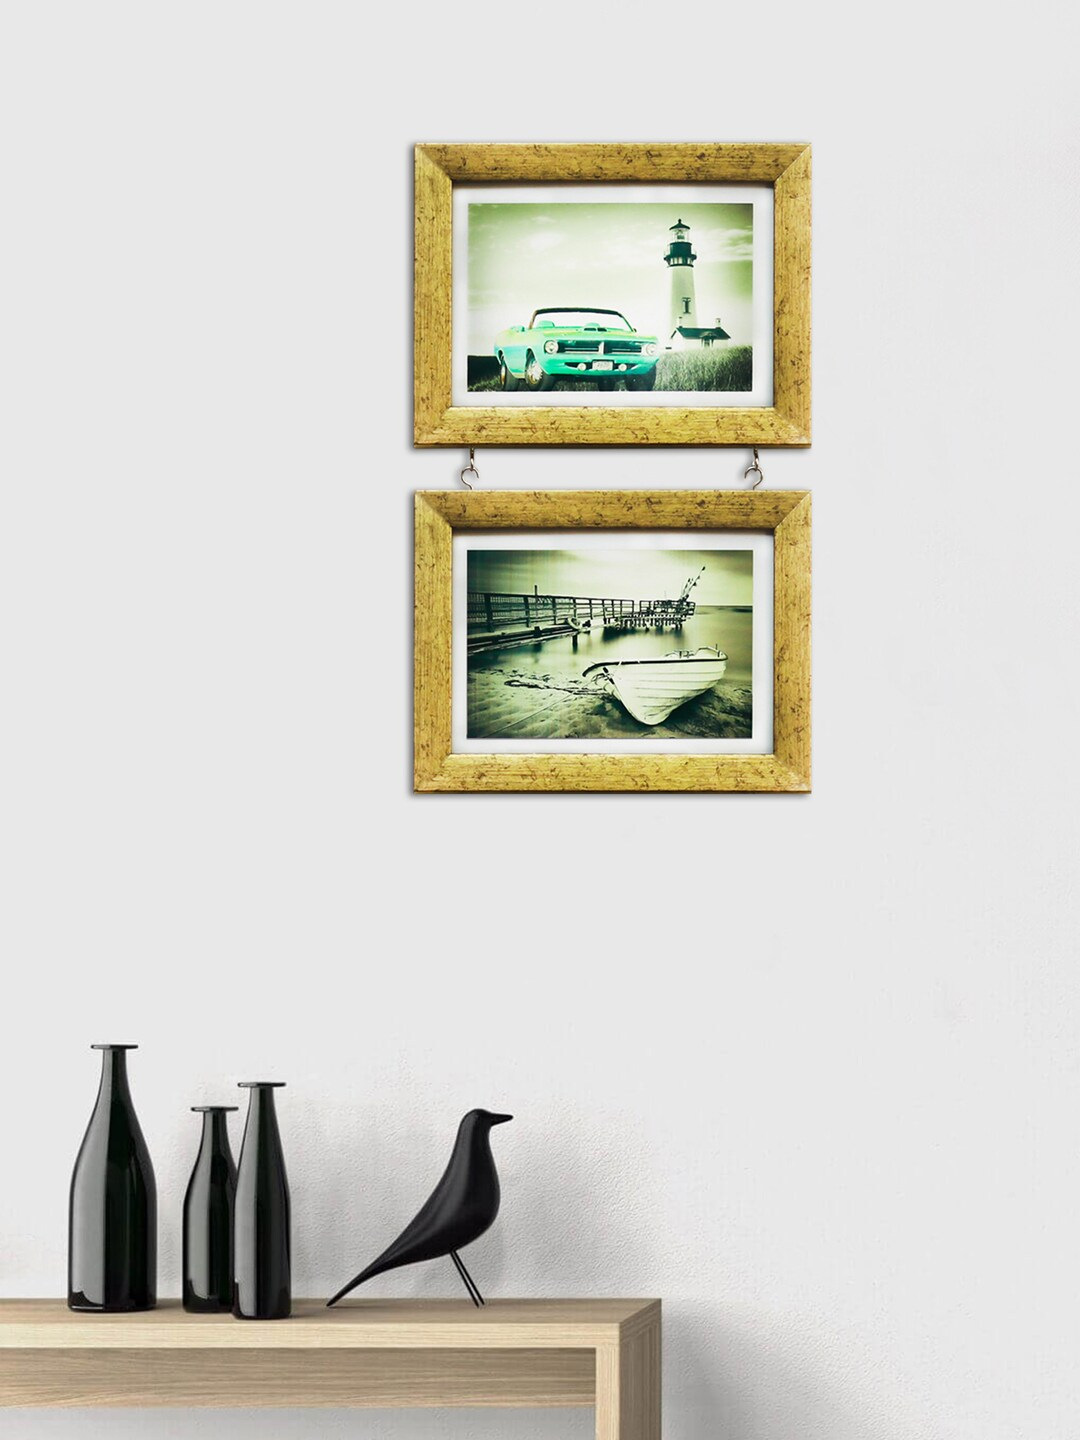 Photo Frames - Buy Best Photo Frame Online in India   Myntra